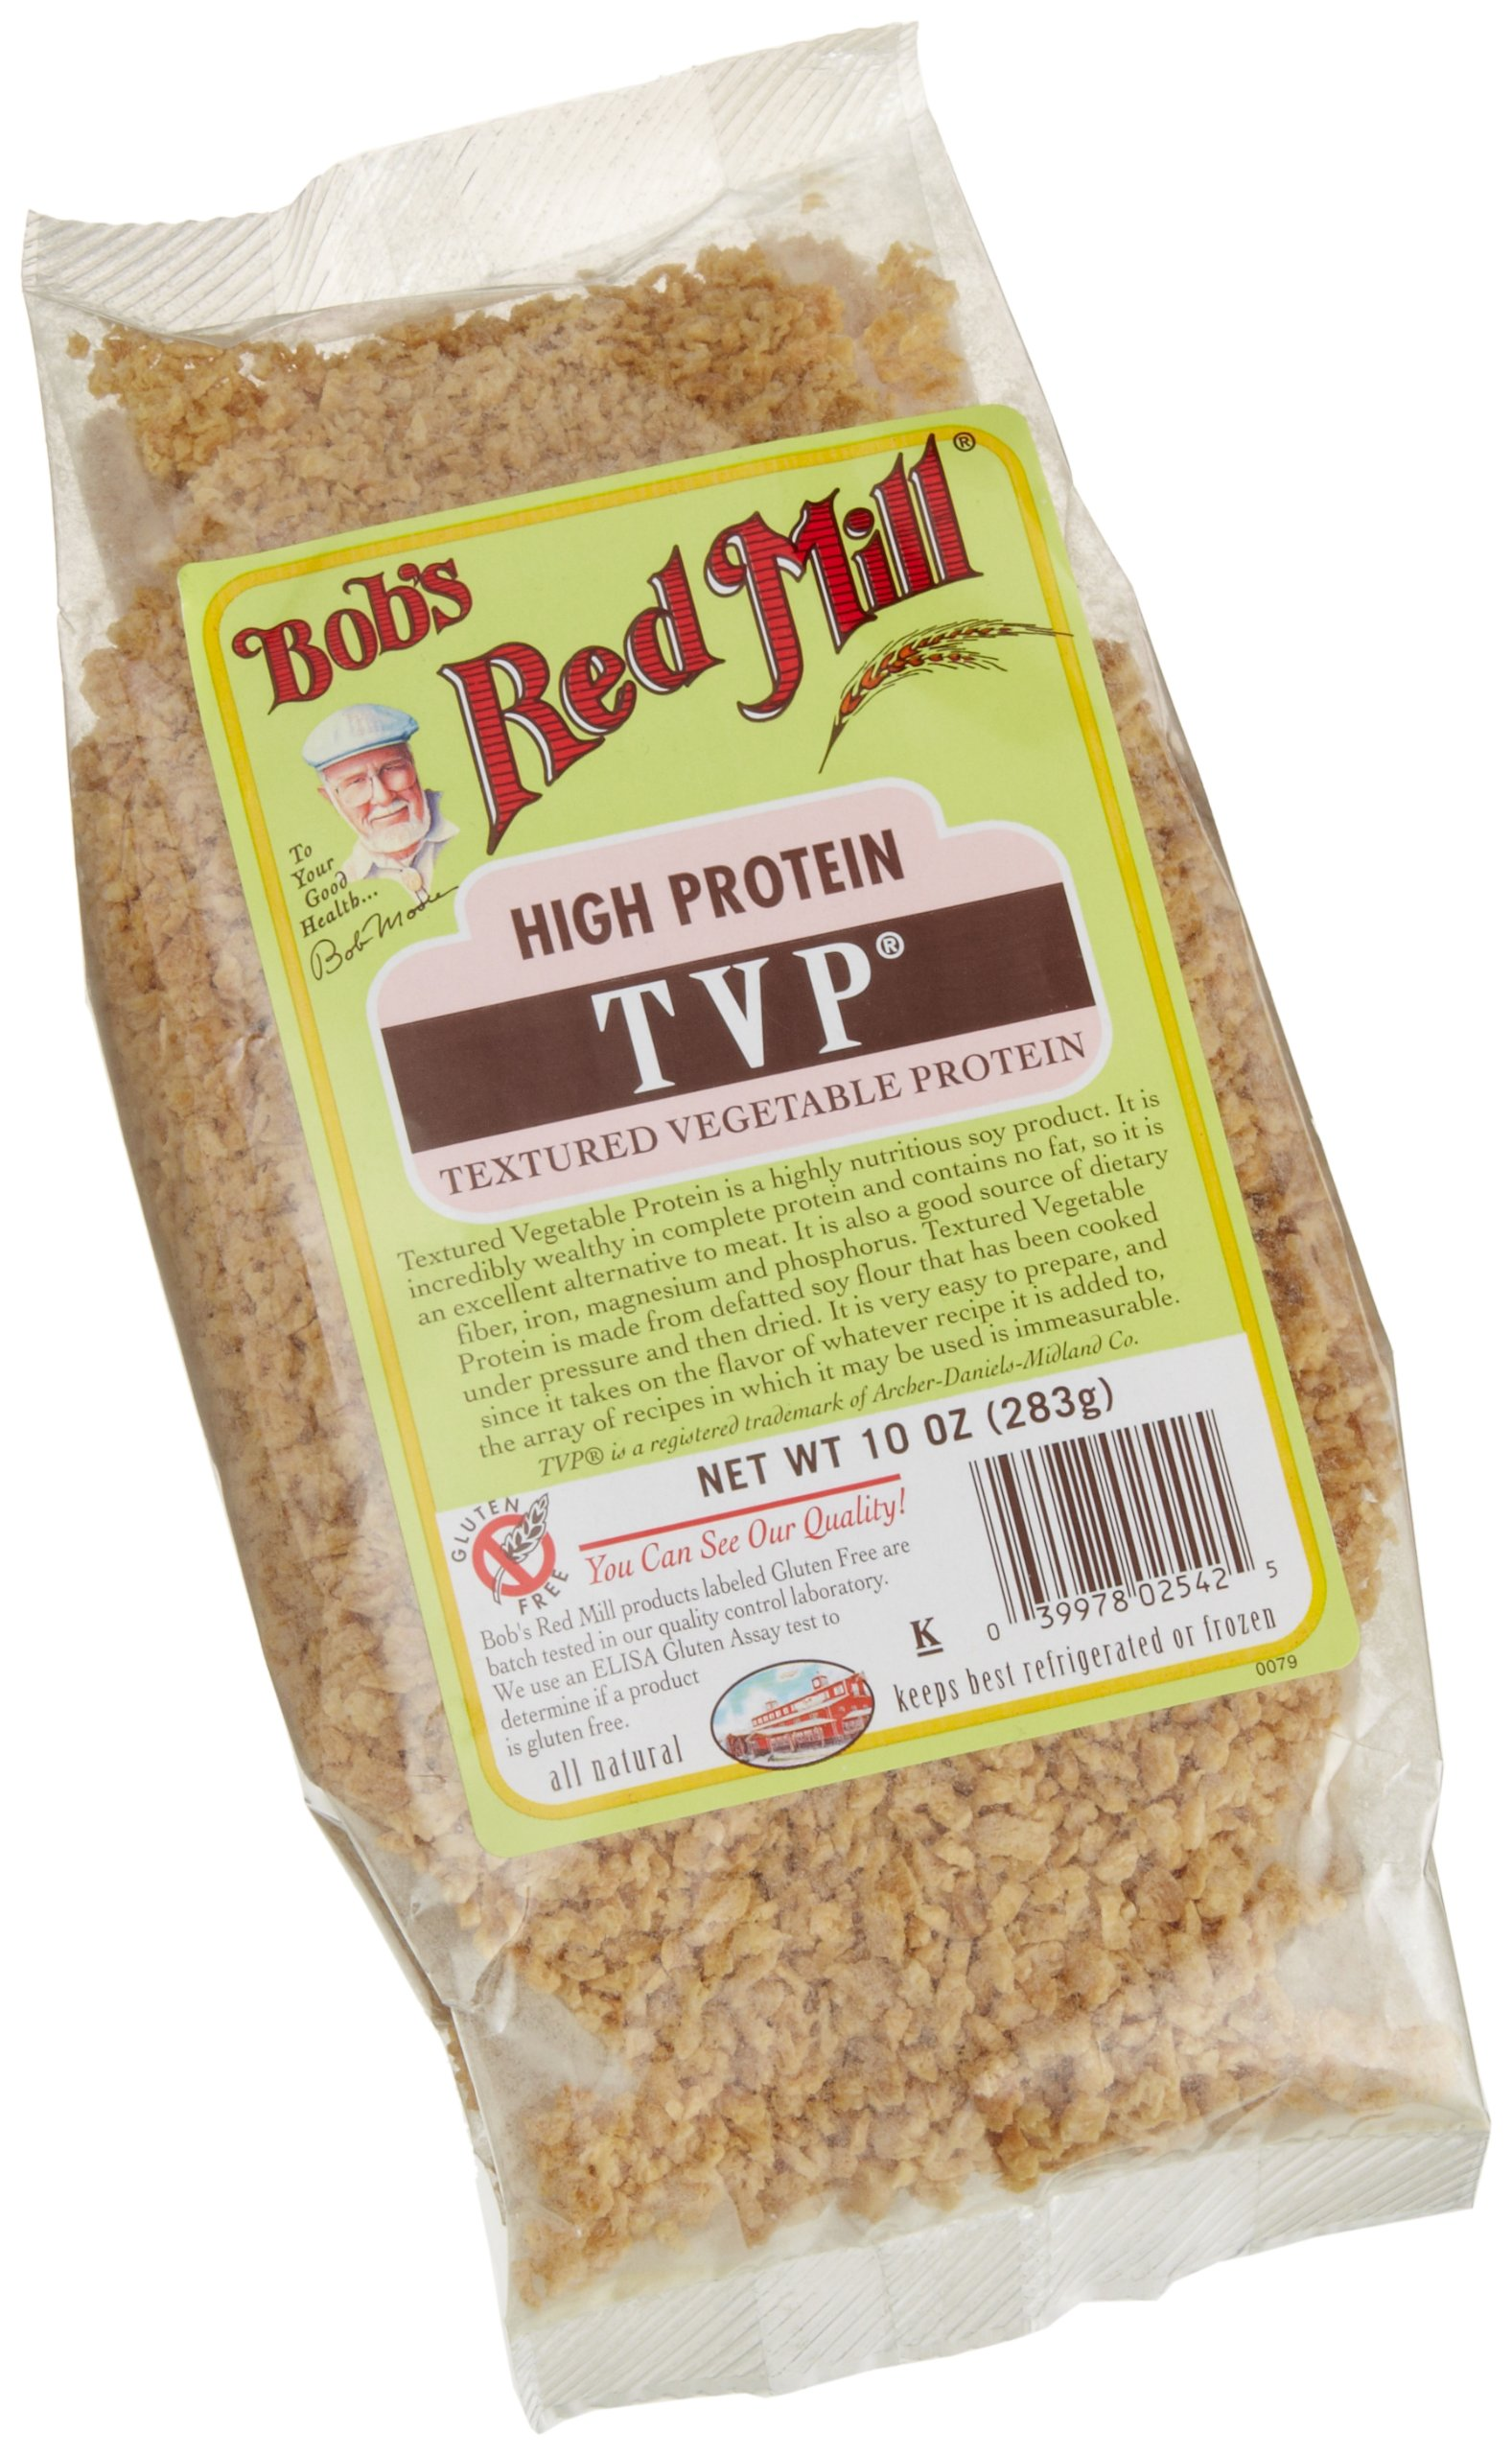 Bob's Red Mill Textured Vegetable Protein, 10 Ounce (Pack of 4) by Bob's Red Mill (Image #2)